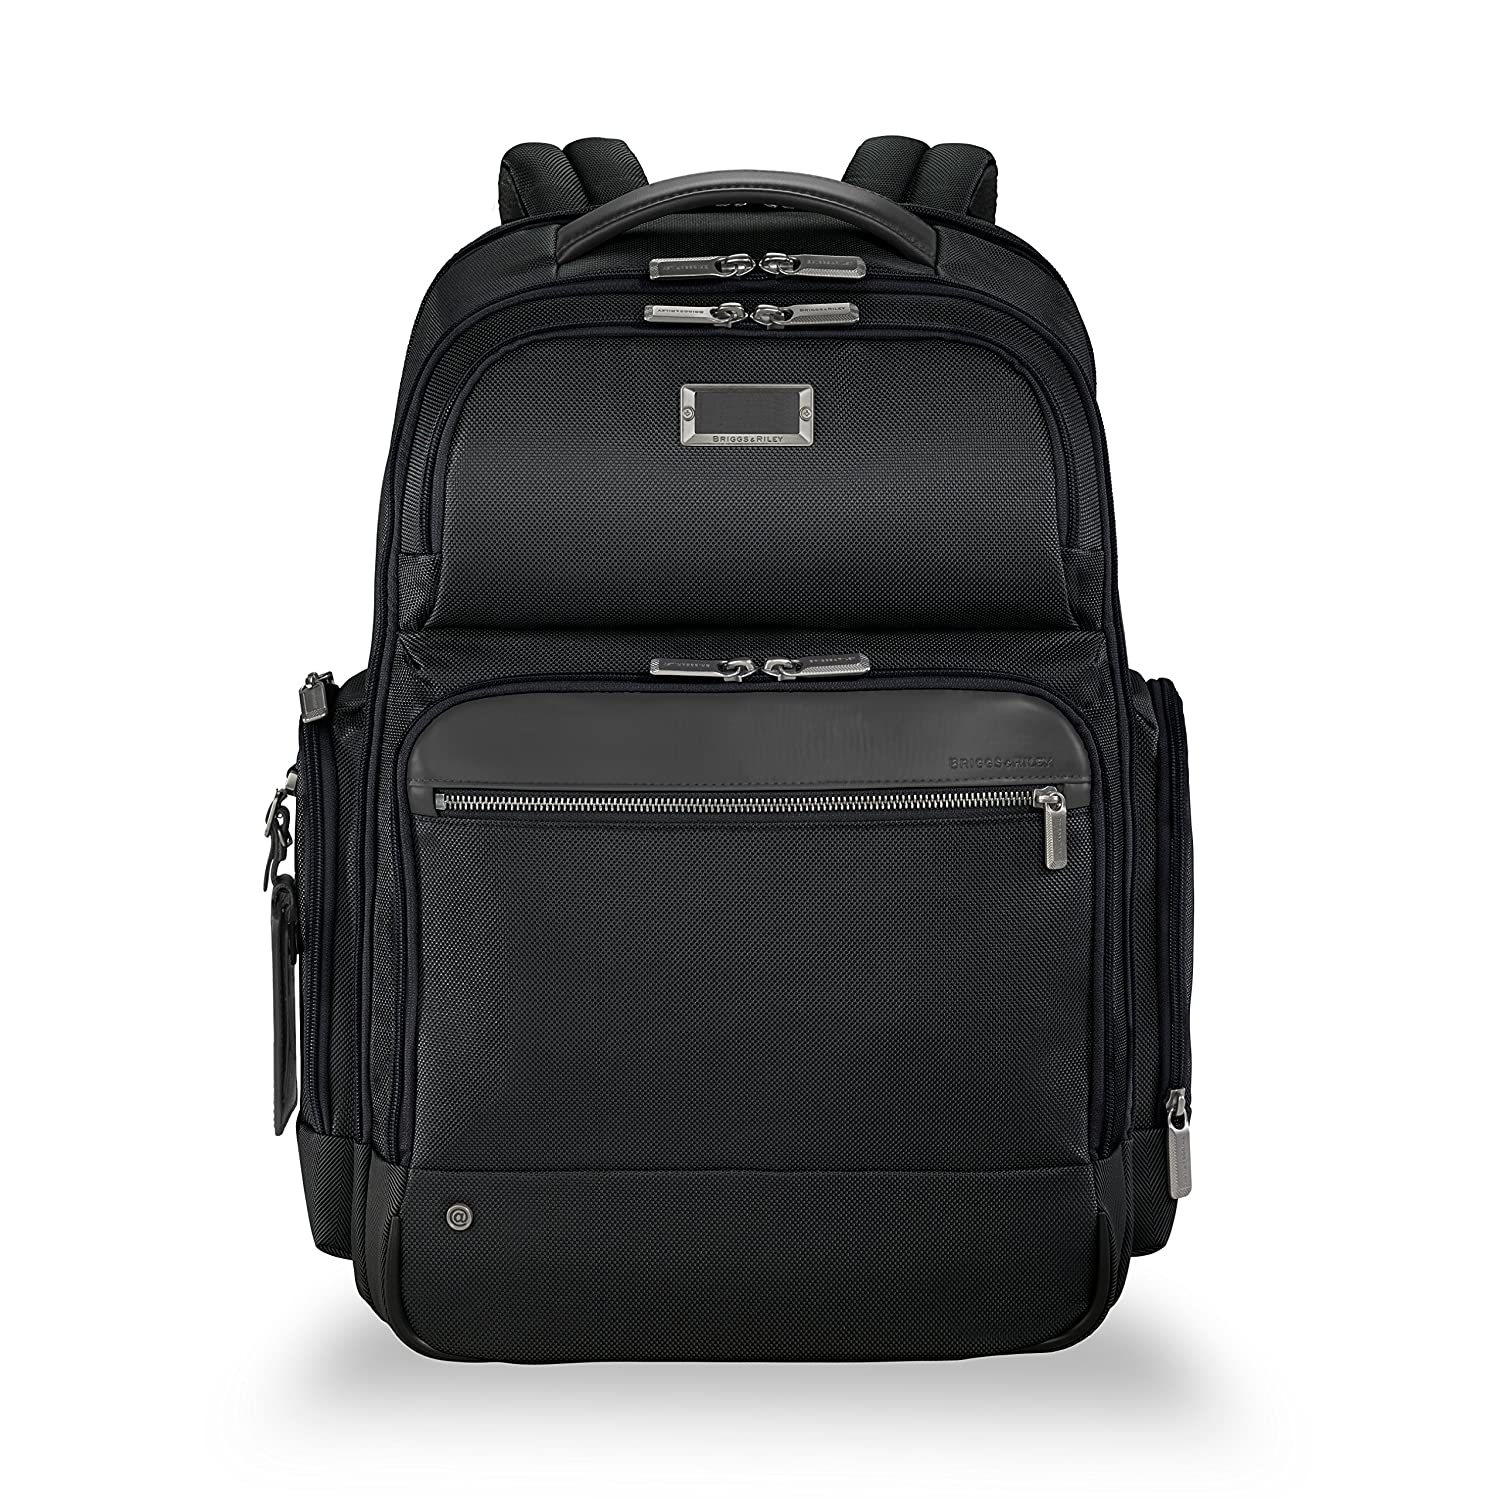 Briggs Riley Work Large Laptop Backpack for women and men. Fits up to 17 inch laptop. Business Travel Laptop Backpack with RFID Blocking Pocket, Black